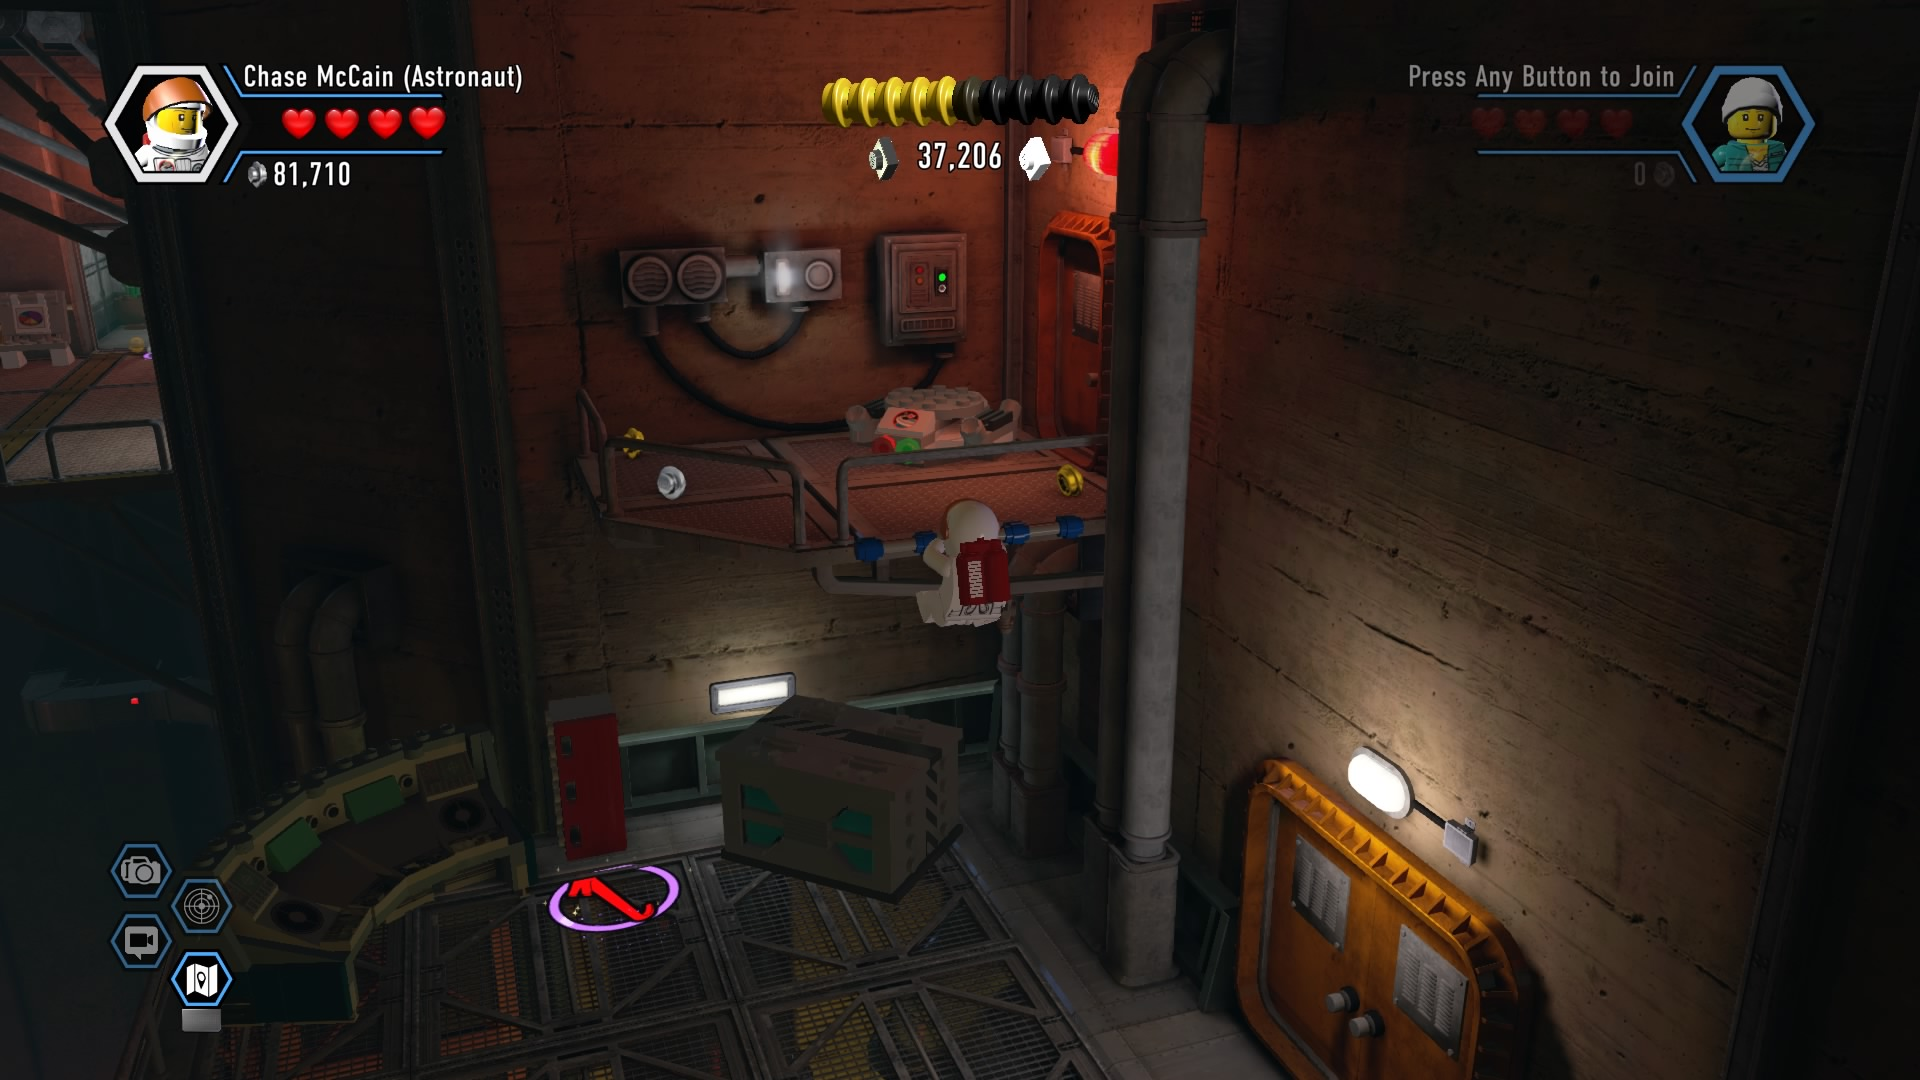 Lego City Undercover Walkthrough Chapter 13 Secret Base Guide Switch Bounce Produced On Press Now That Youre The Right Side Of Giant Cavern Fly Up To Blue White Handhold High Platform And Activate Teleporter Pad